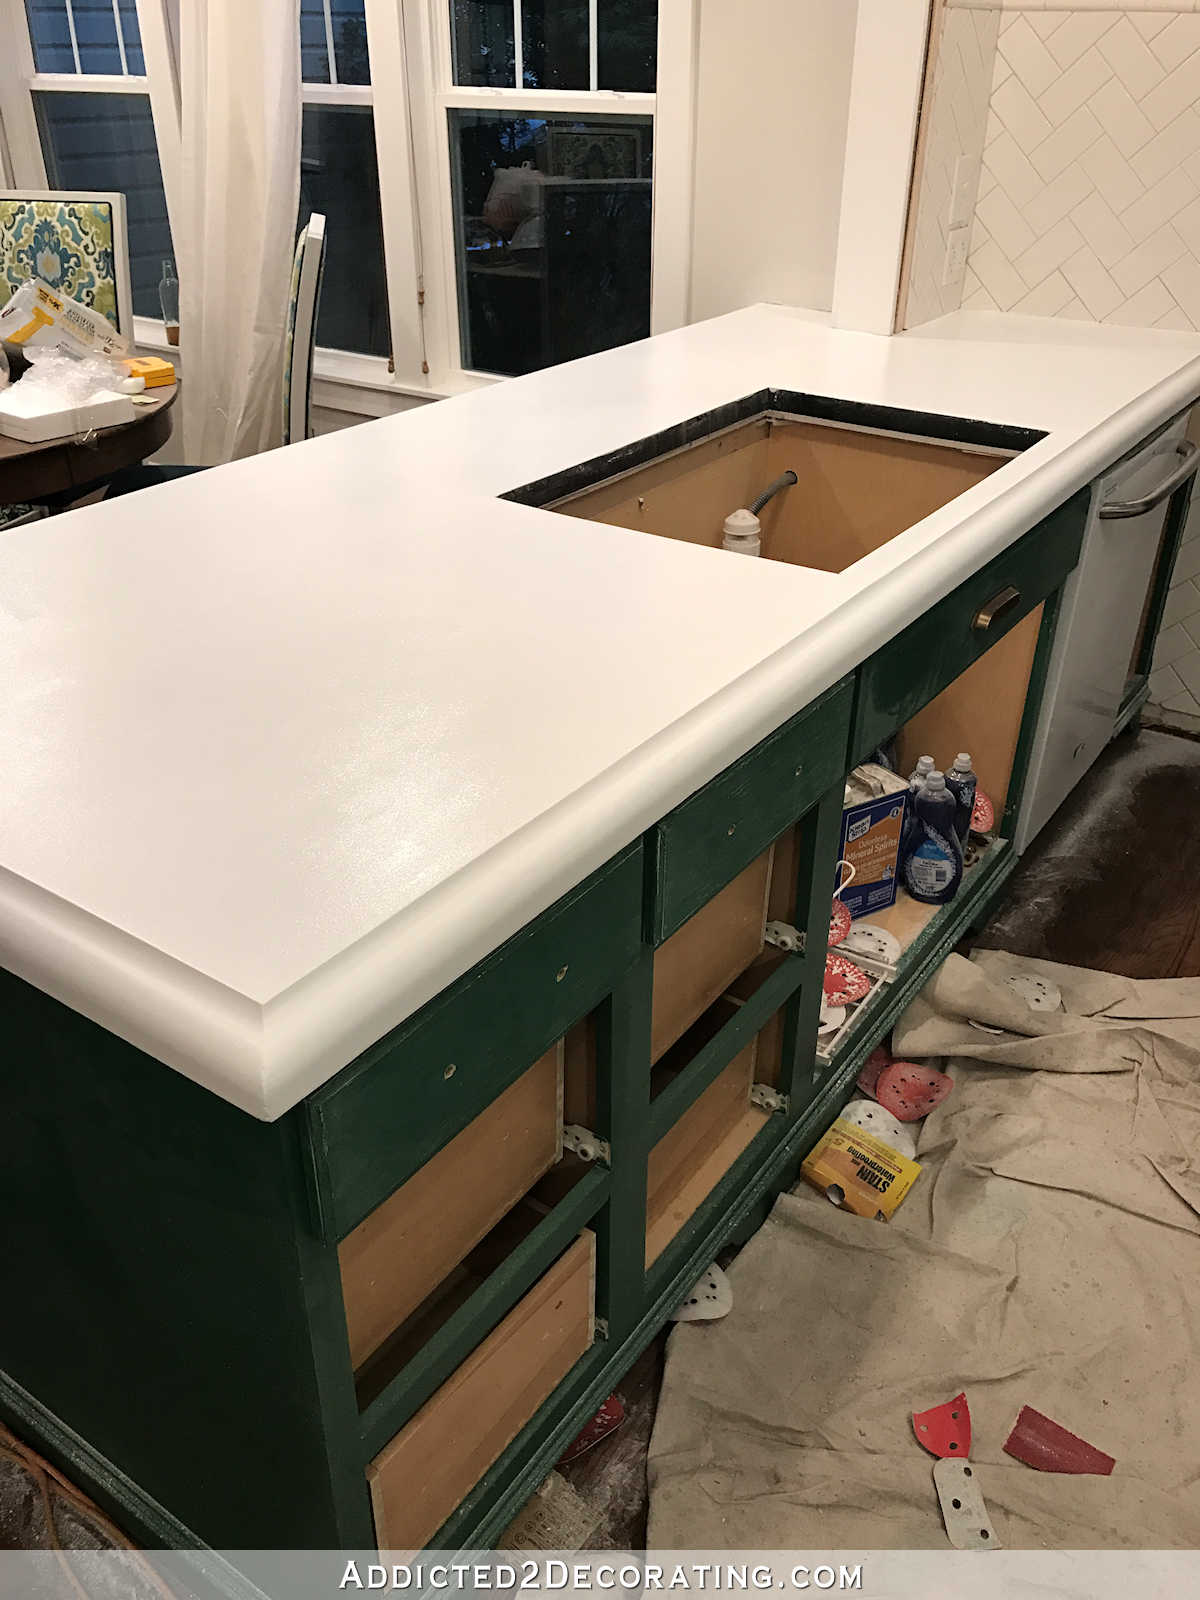 refinishing concrete countertops - 19 - concrete countertop with two coats of Sherwin Williams High Reflective White paint